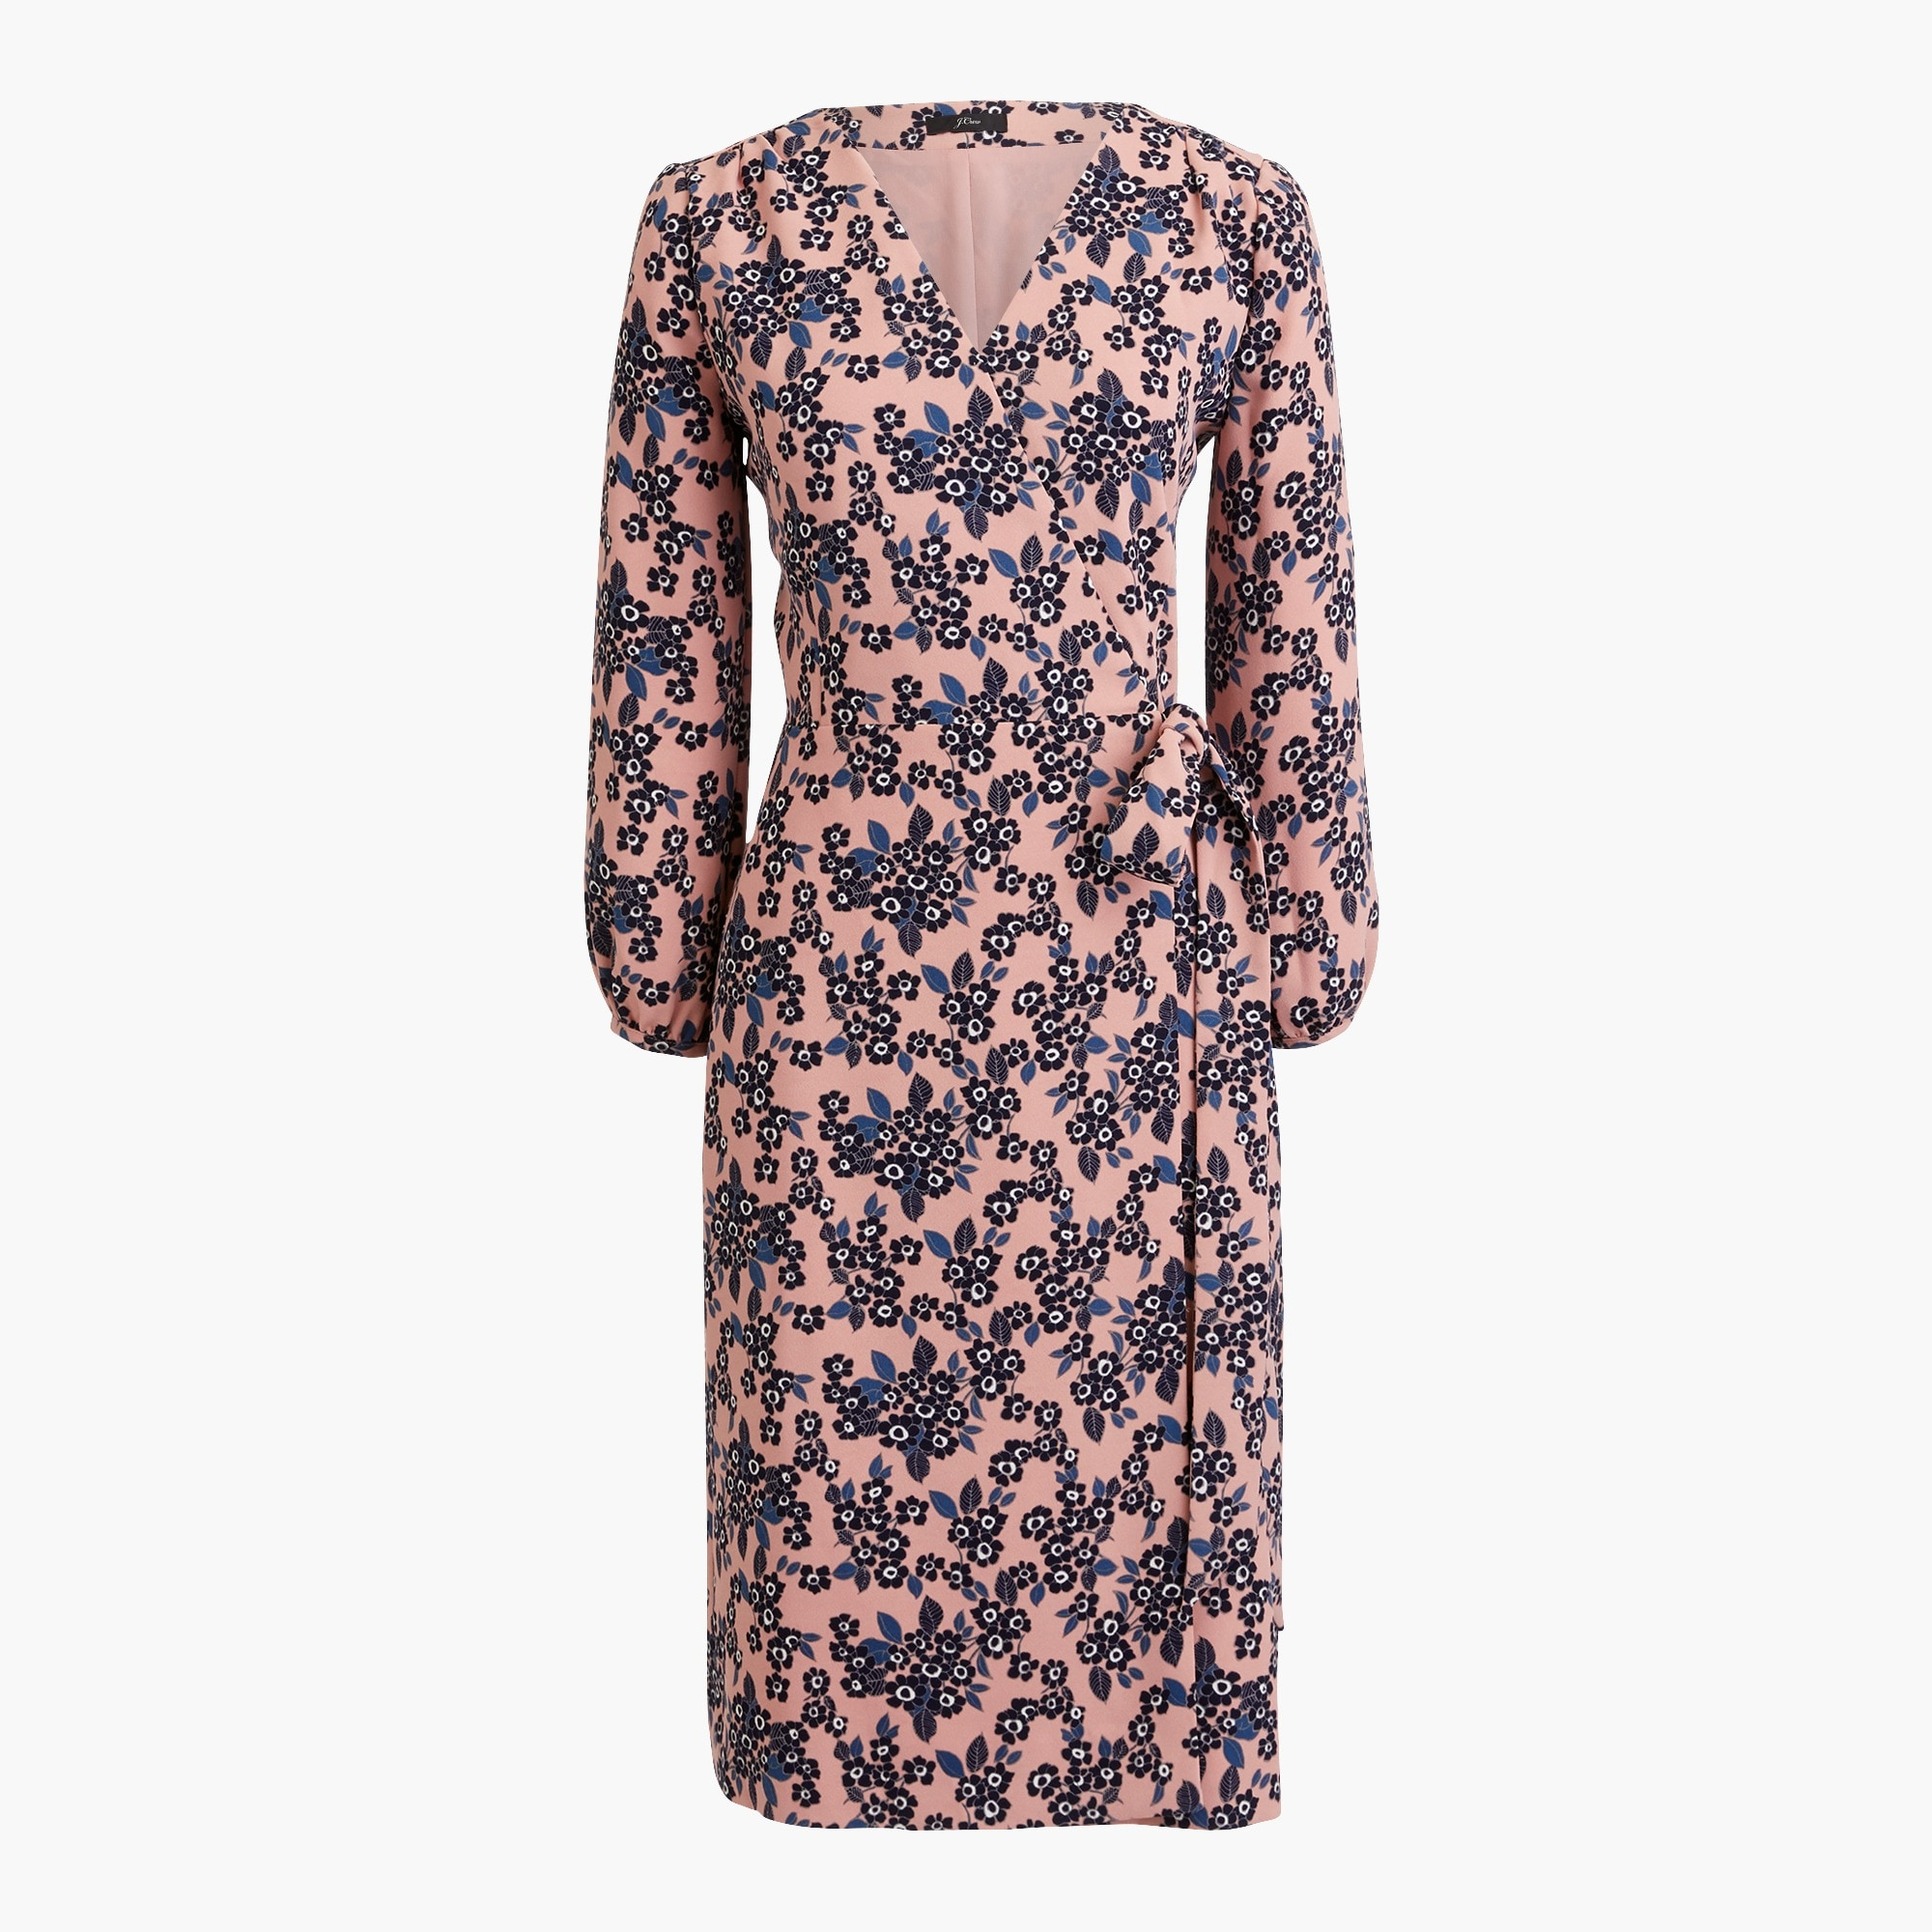 Wrap dress in 365 crepe blush bouquet